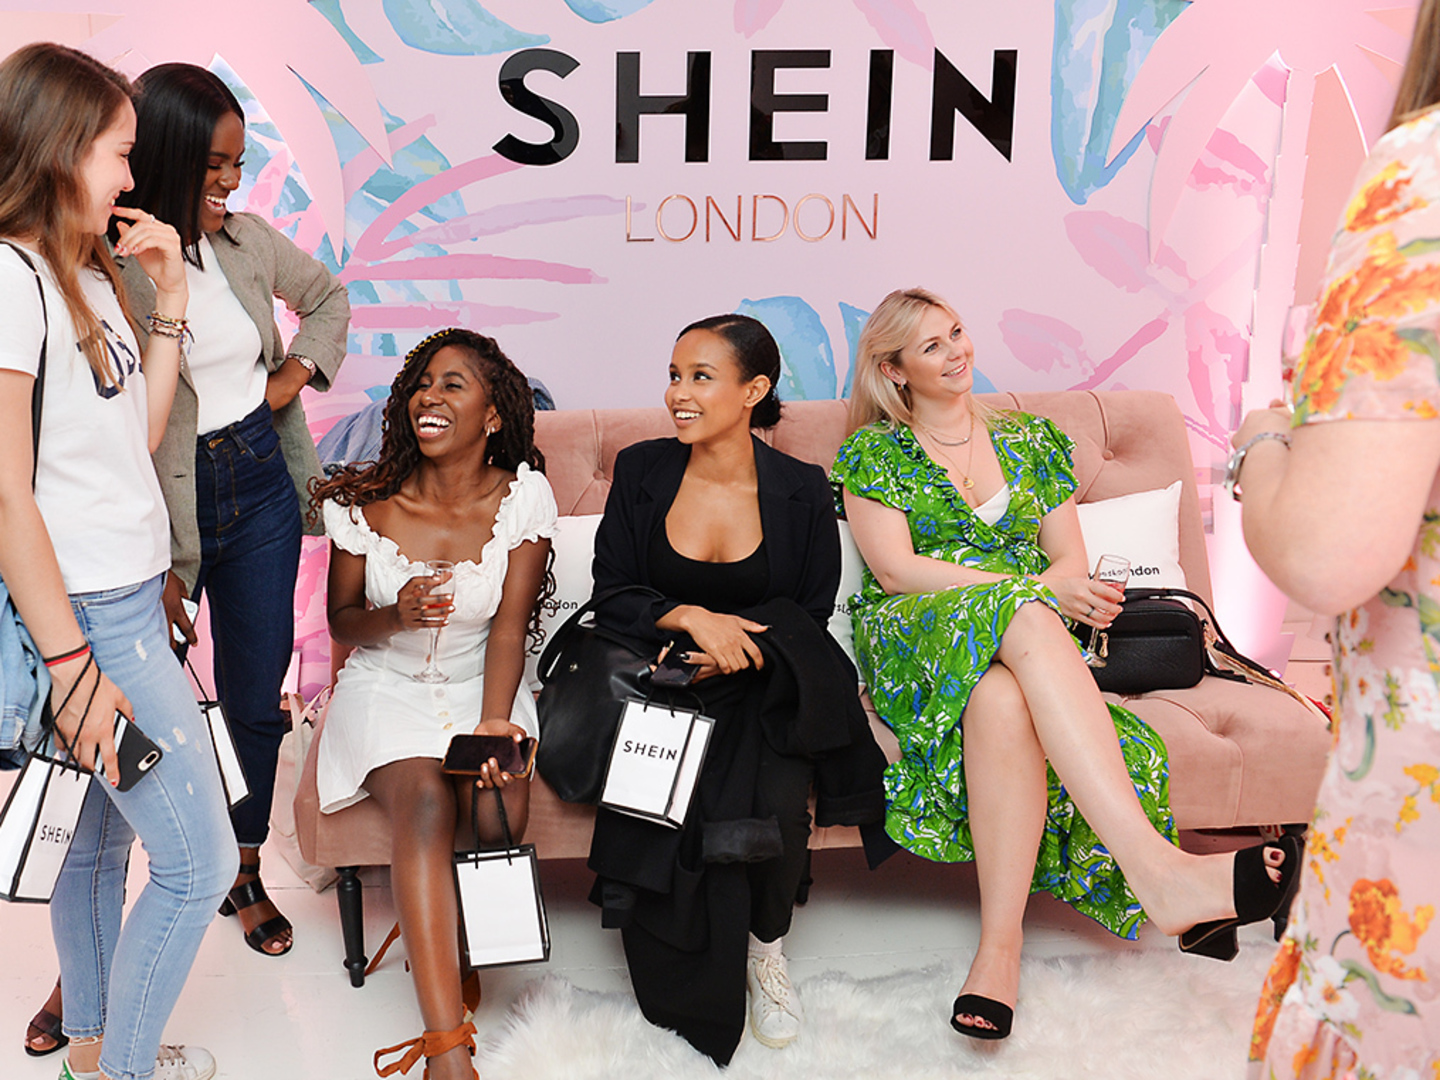 USD15 billion Shein is challenging Zara and H&M. But who controls it and can it sustain itself?